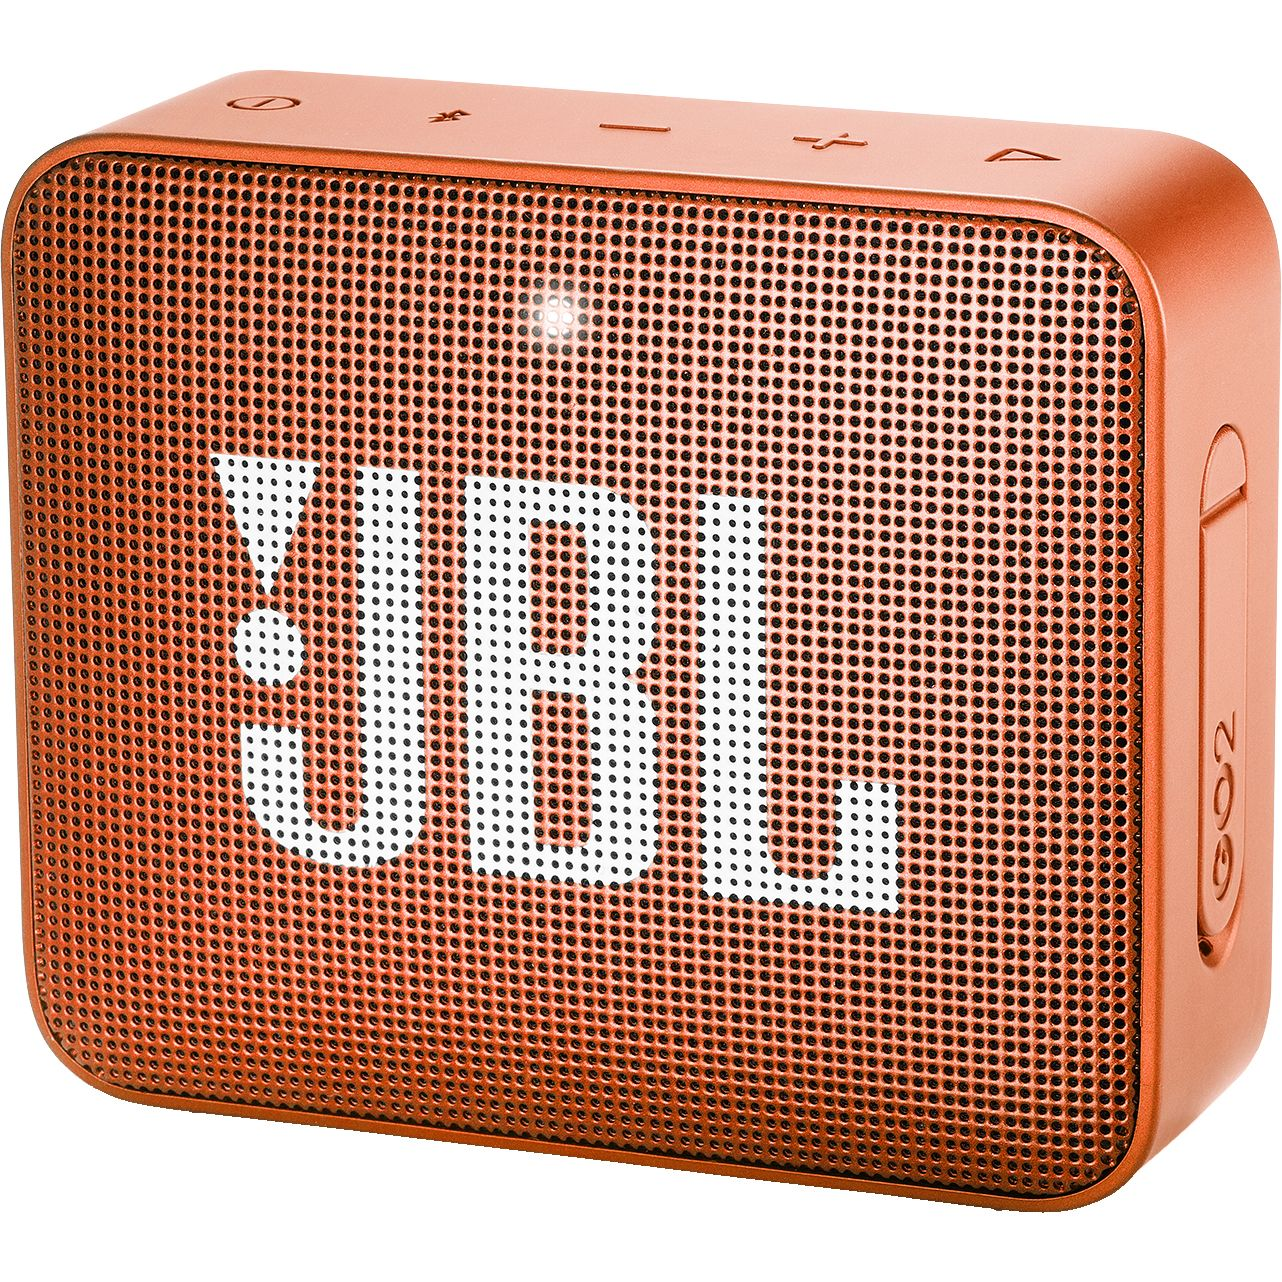 Boxa portabila JBL Go 2, Wireless, Bluetooth, IPX7 Waterproof, Coral Orange